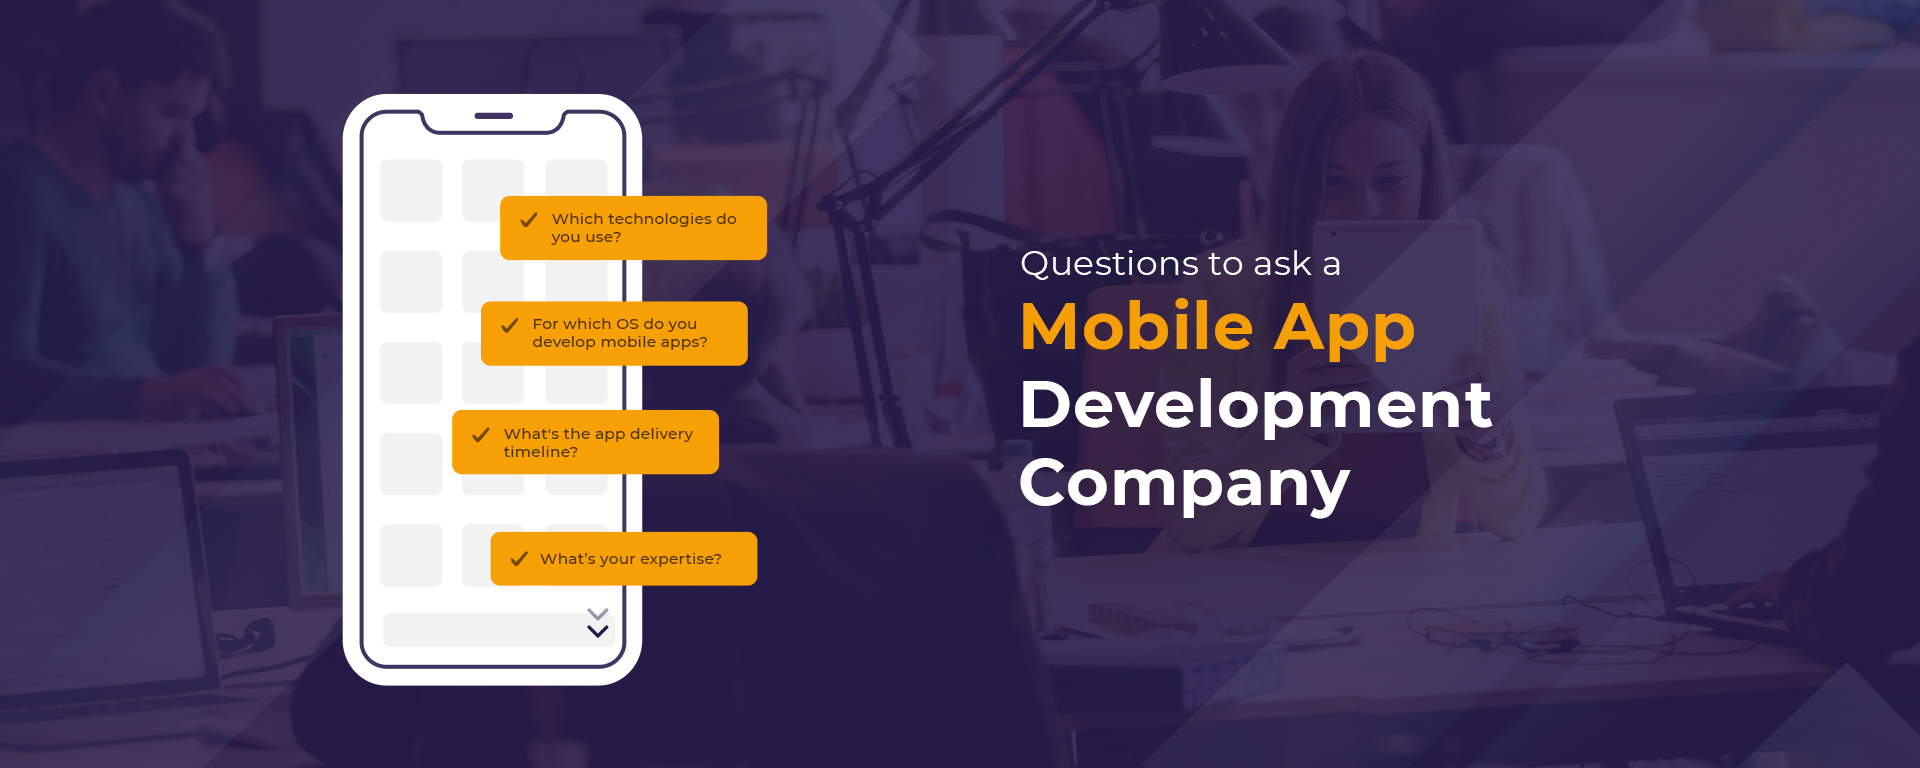 Questions to ask a Custom Mobile Application Development Company